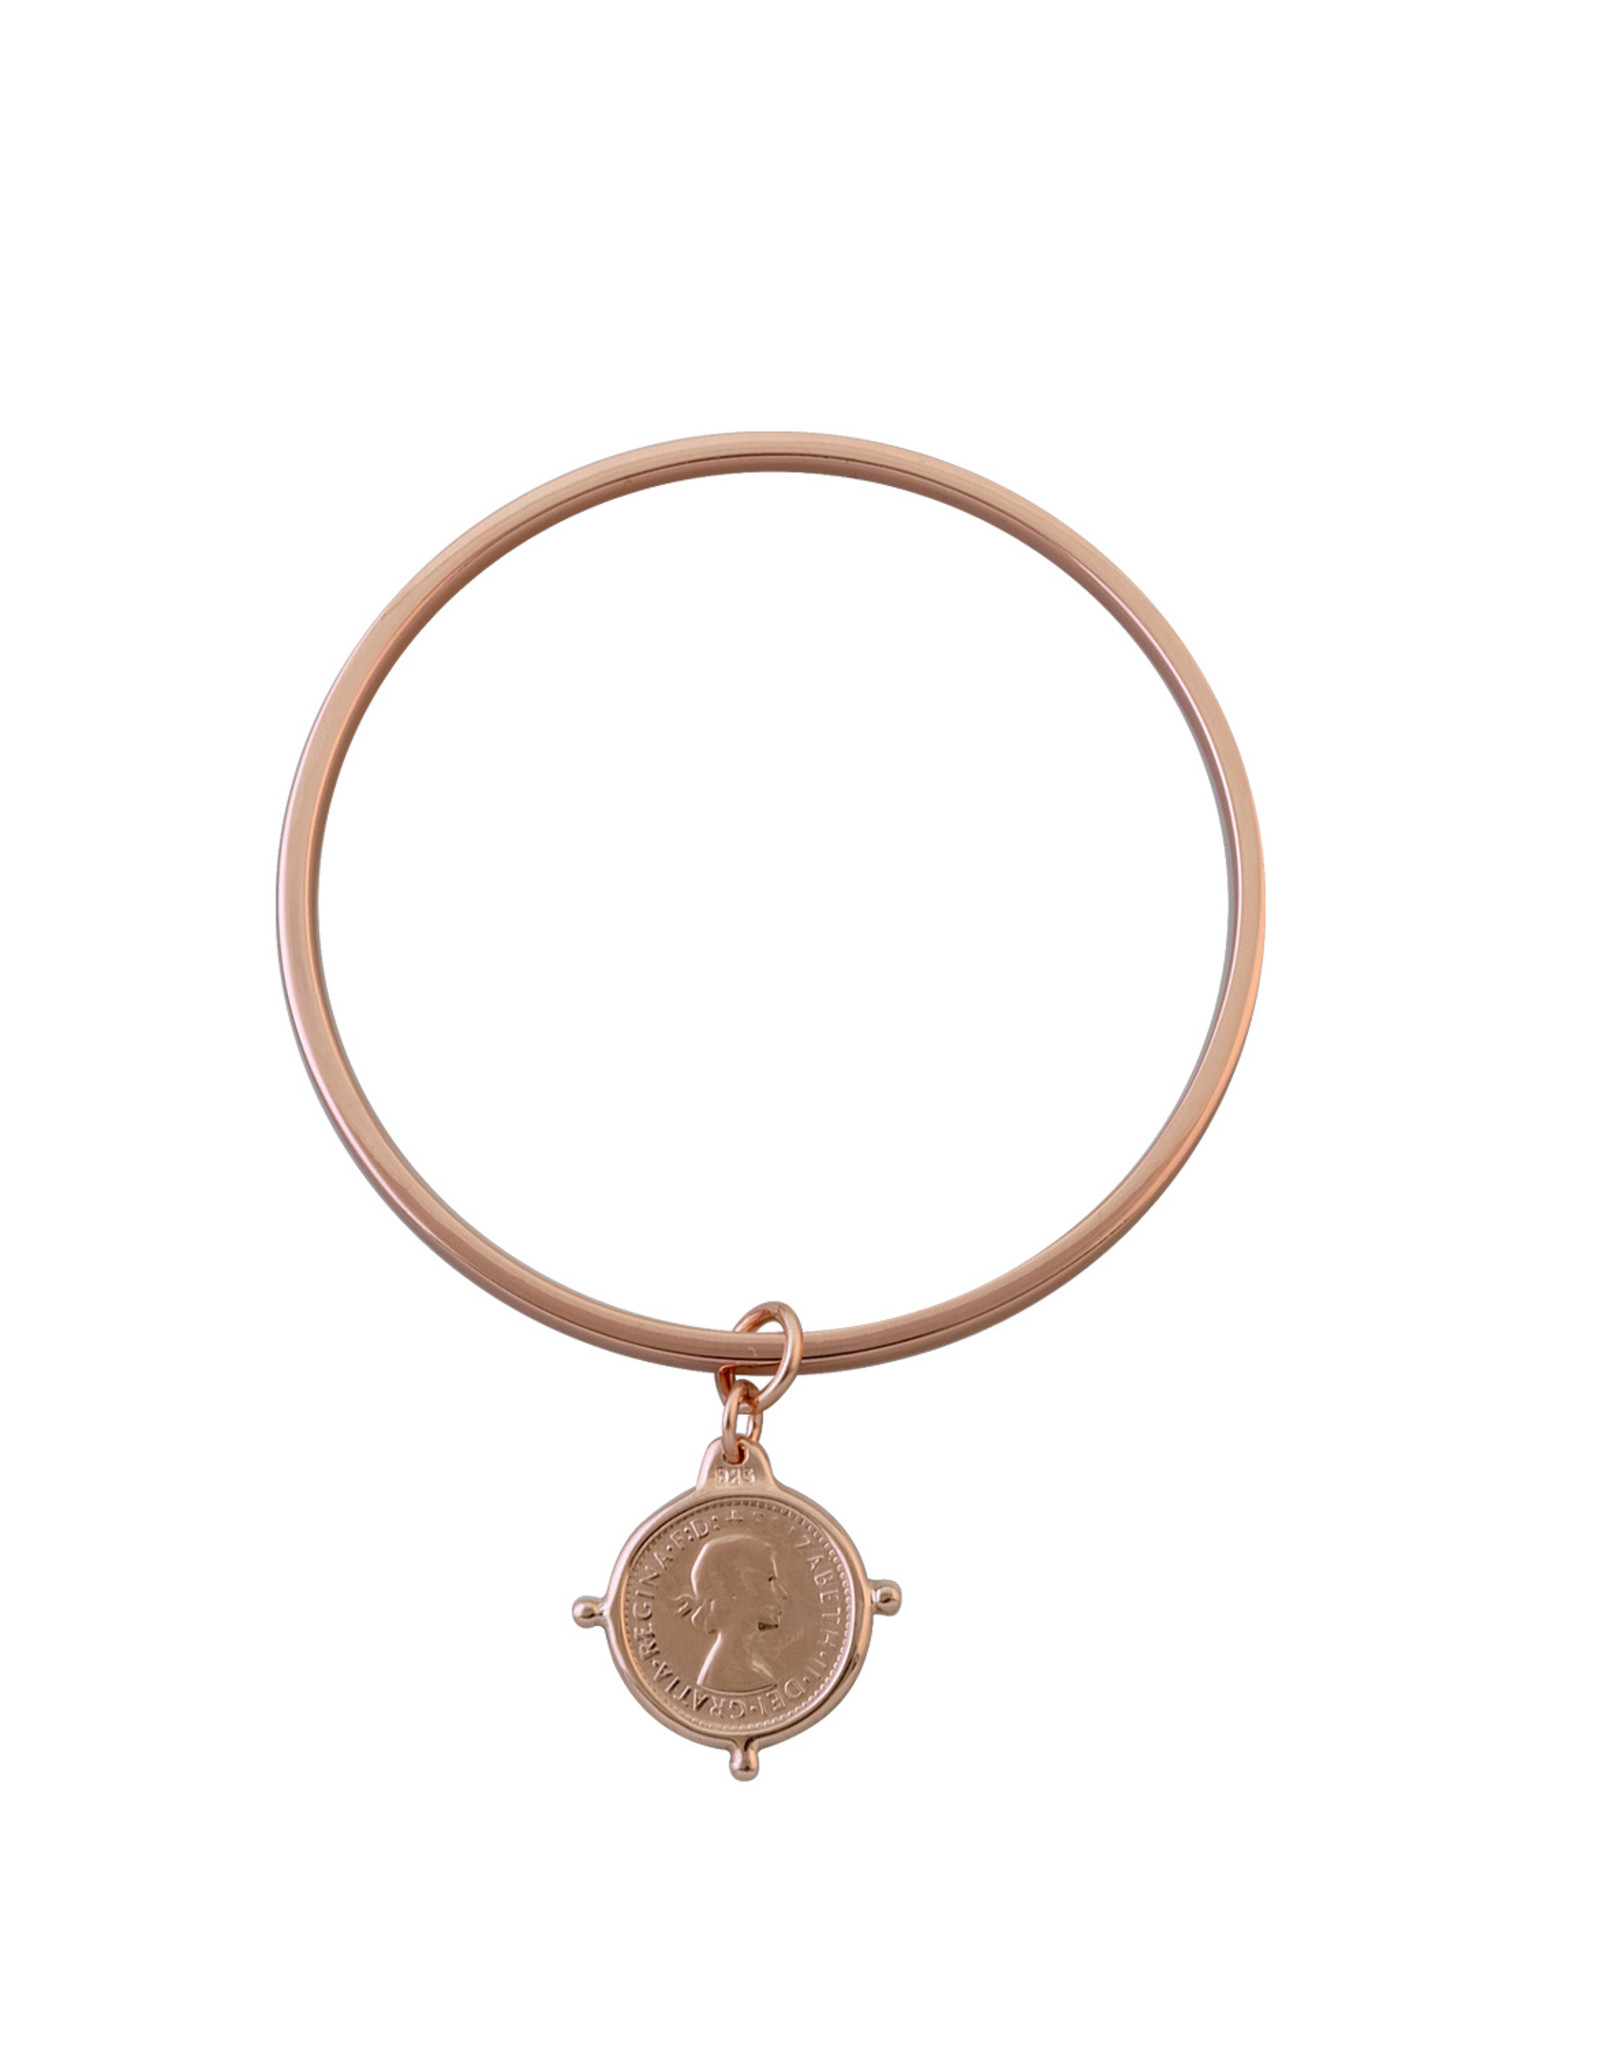 VON TRESKOW FLAT EDGE COIN BANGLE ROSE GOLD